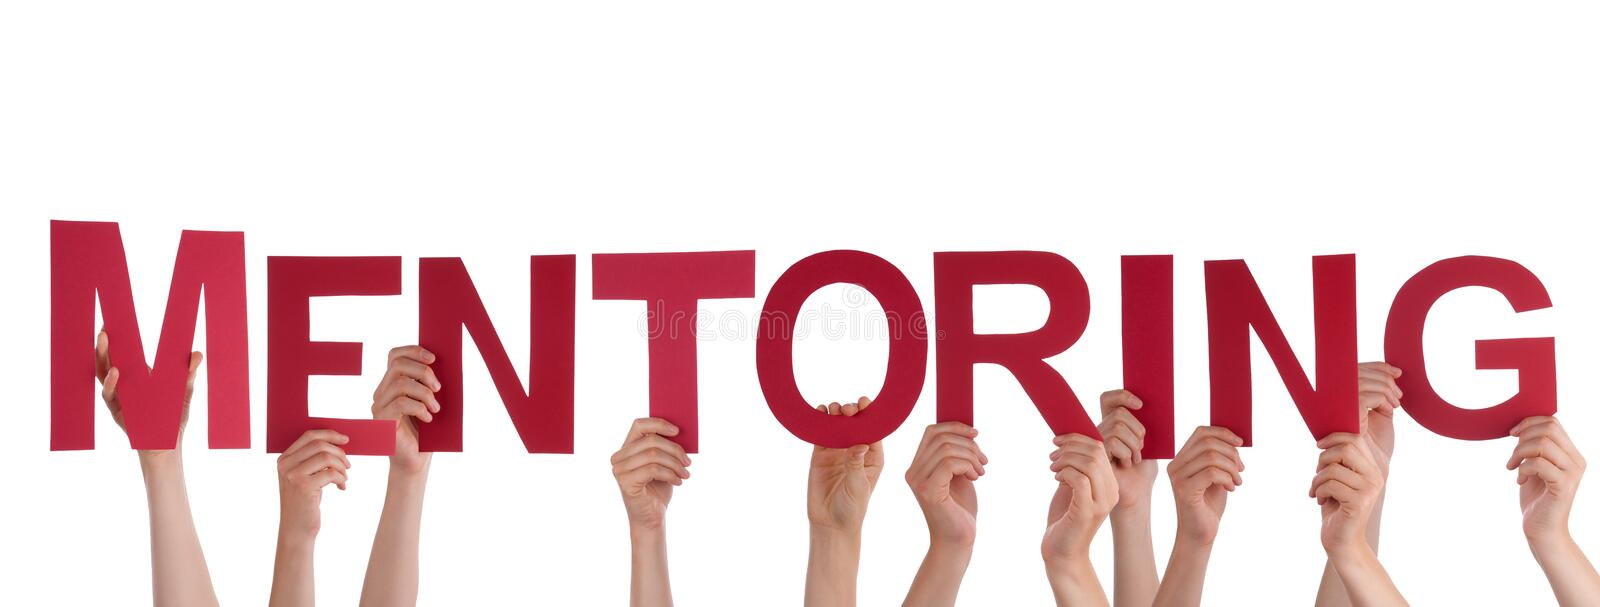 Download People Holding Mentoring stock image. Image of motivate - 39768565